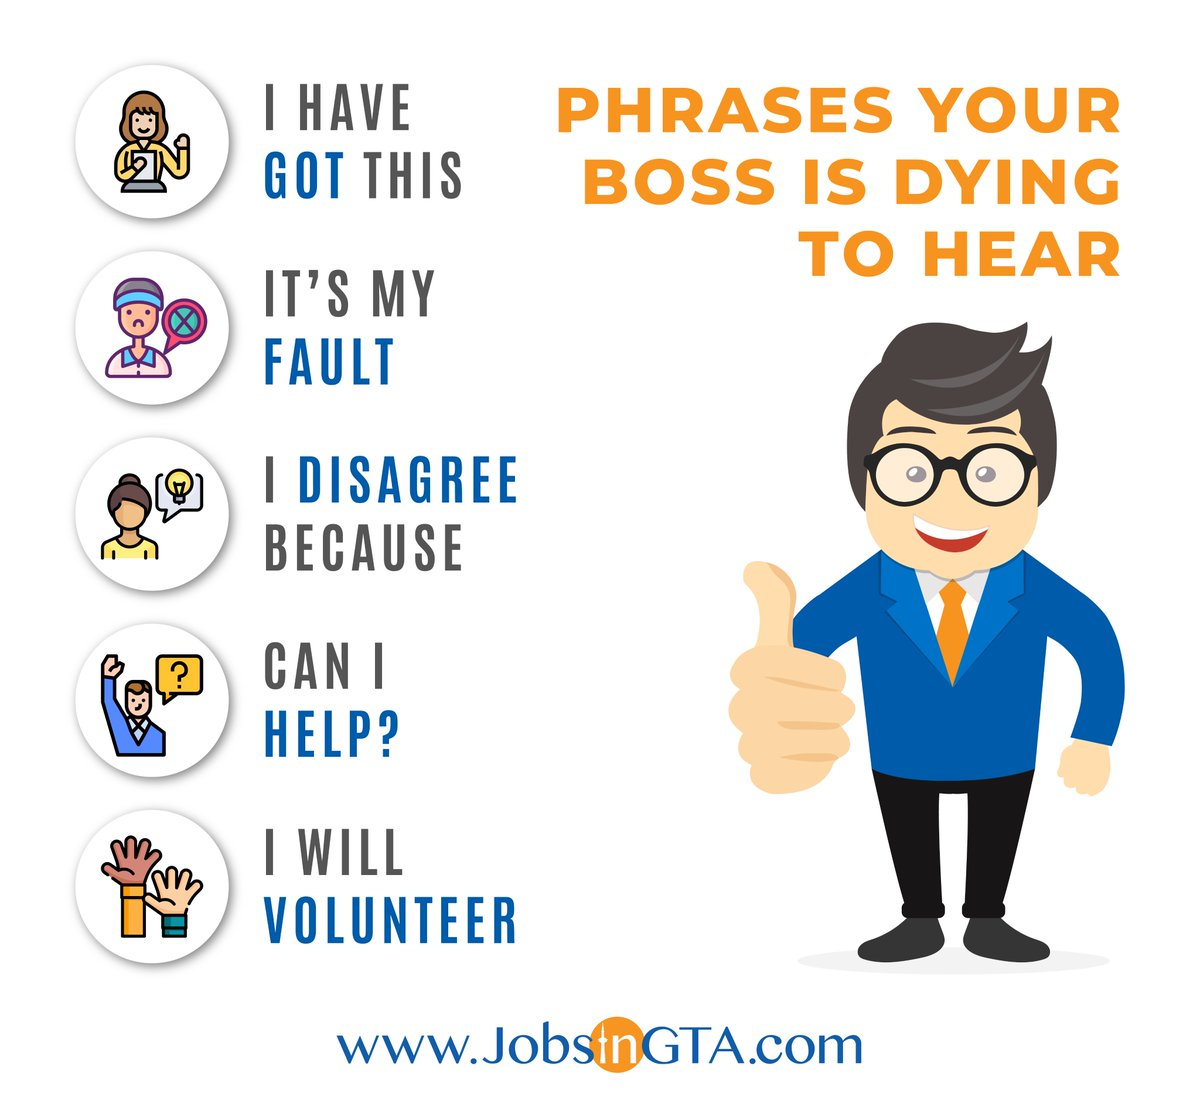 Your boss shouldn't have to ask for everything get ahead of the game and impress your boss by using these key phrases at work. Signup @ https://t.co/0DE1VZ2HWb & get hired from home  #JobsInGTA #SearchLocal #RemoteHiring #FreeSignup #GTA #Jobs #TuesdayMotivation https://t.co/iO4k3rmMrc